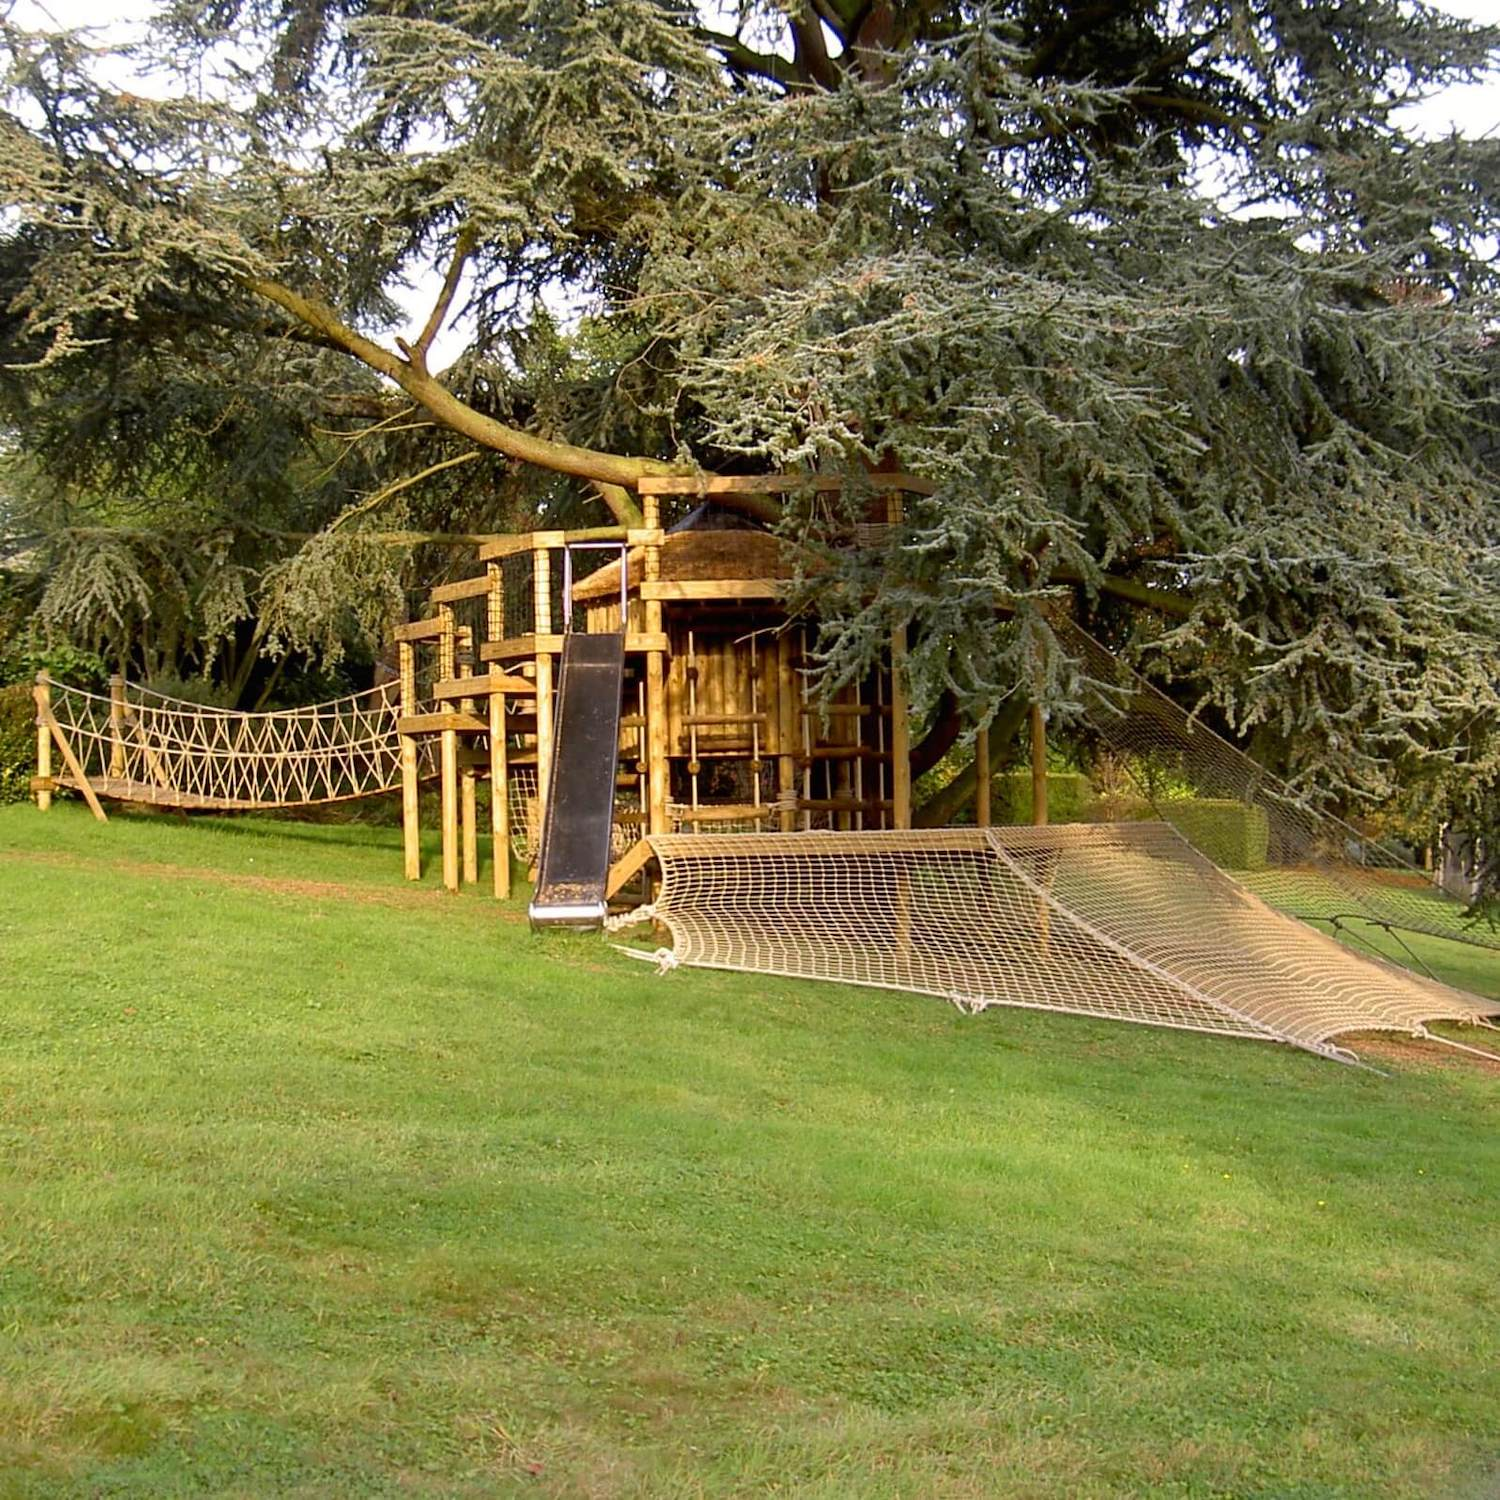 Garden Treehouse Wrapping A Blue Cedar Treehouses Rope